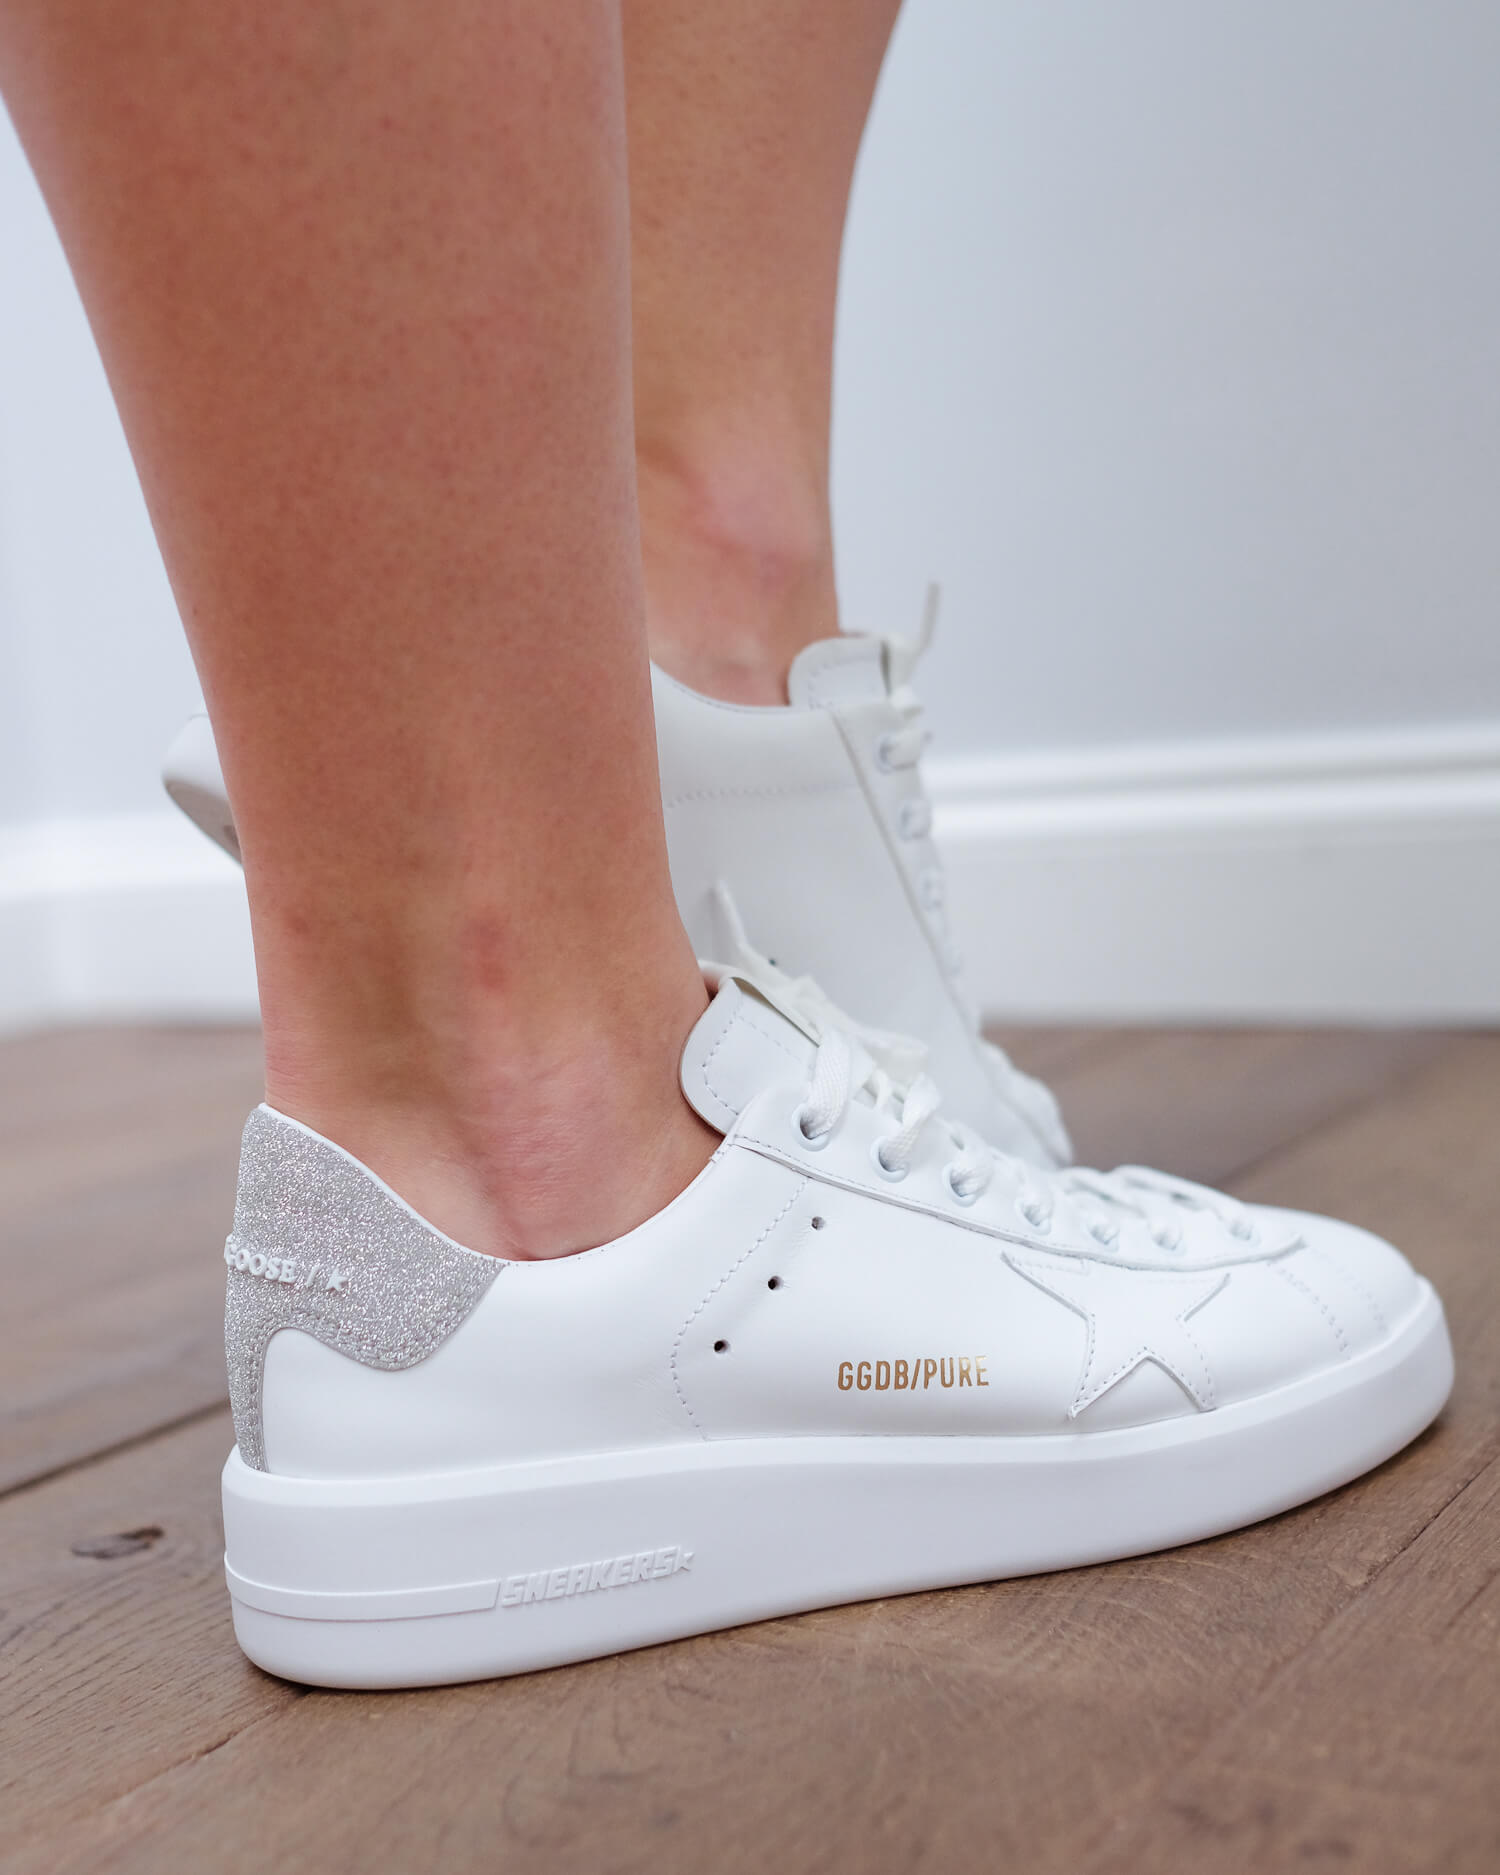 GG Pure star 603 in white with glitter heel